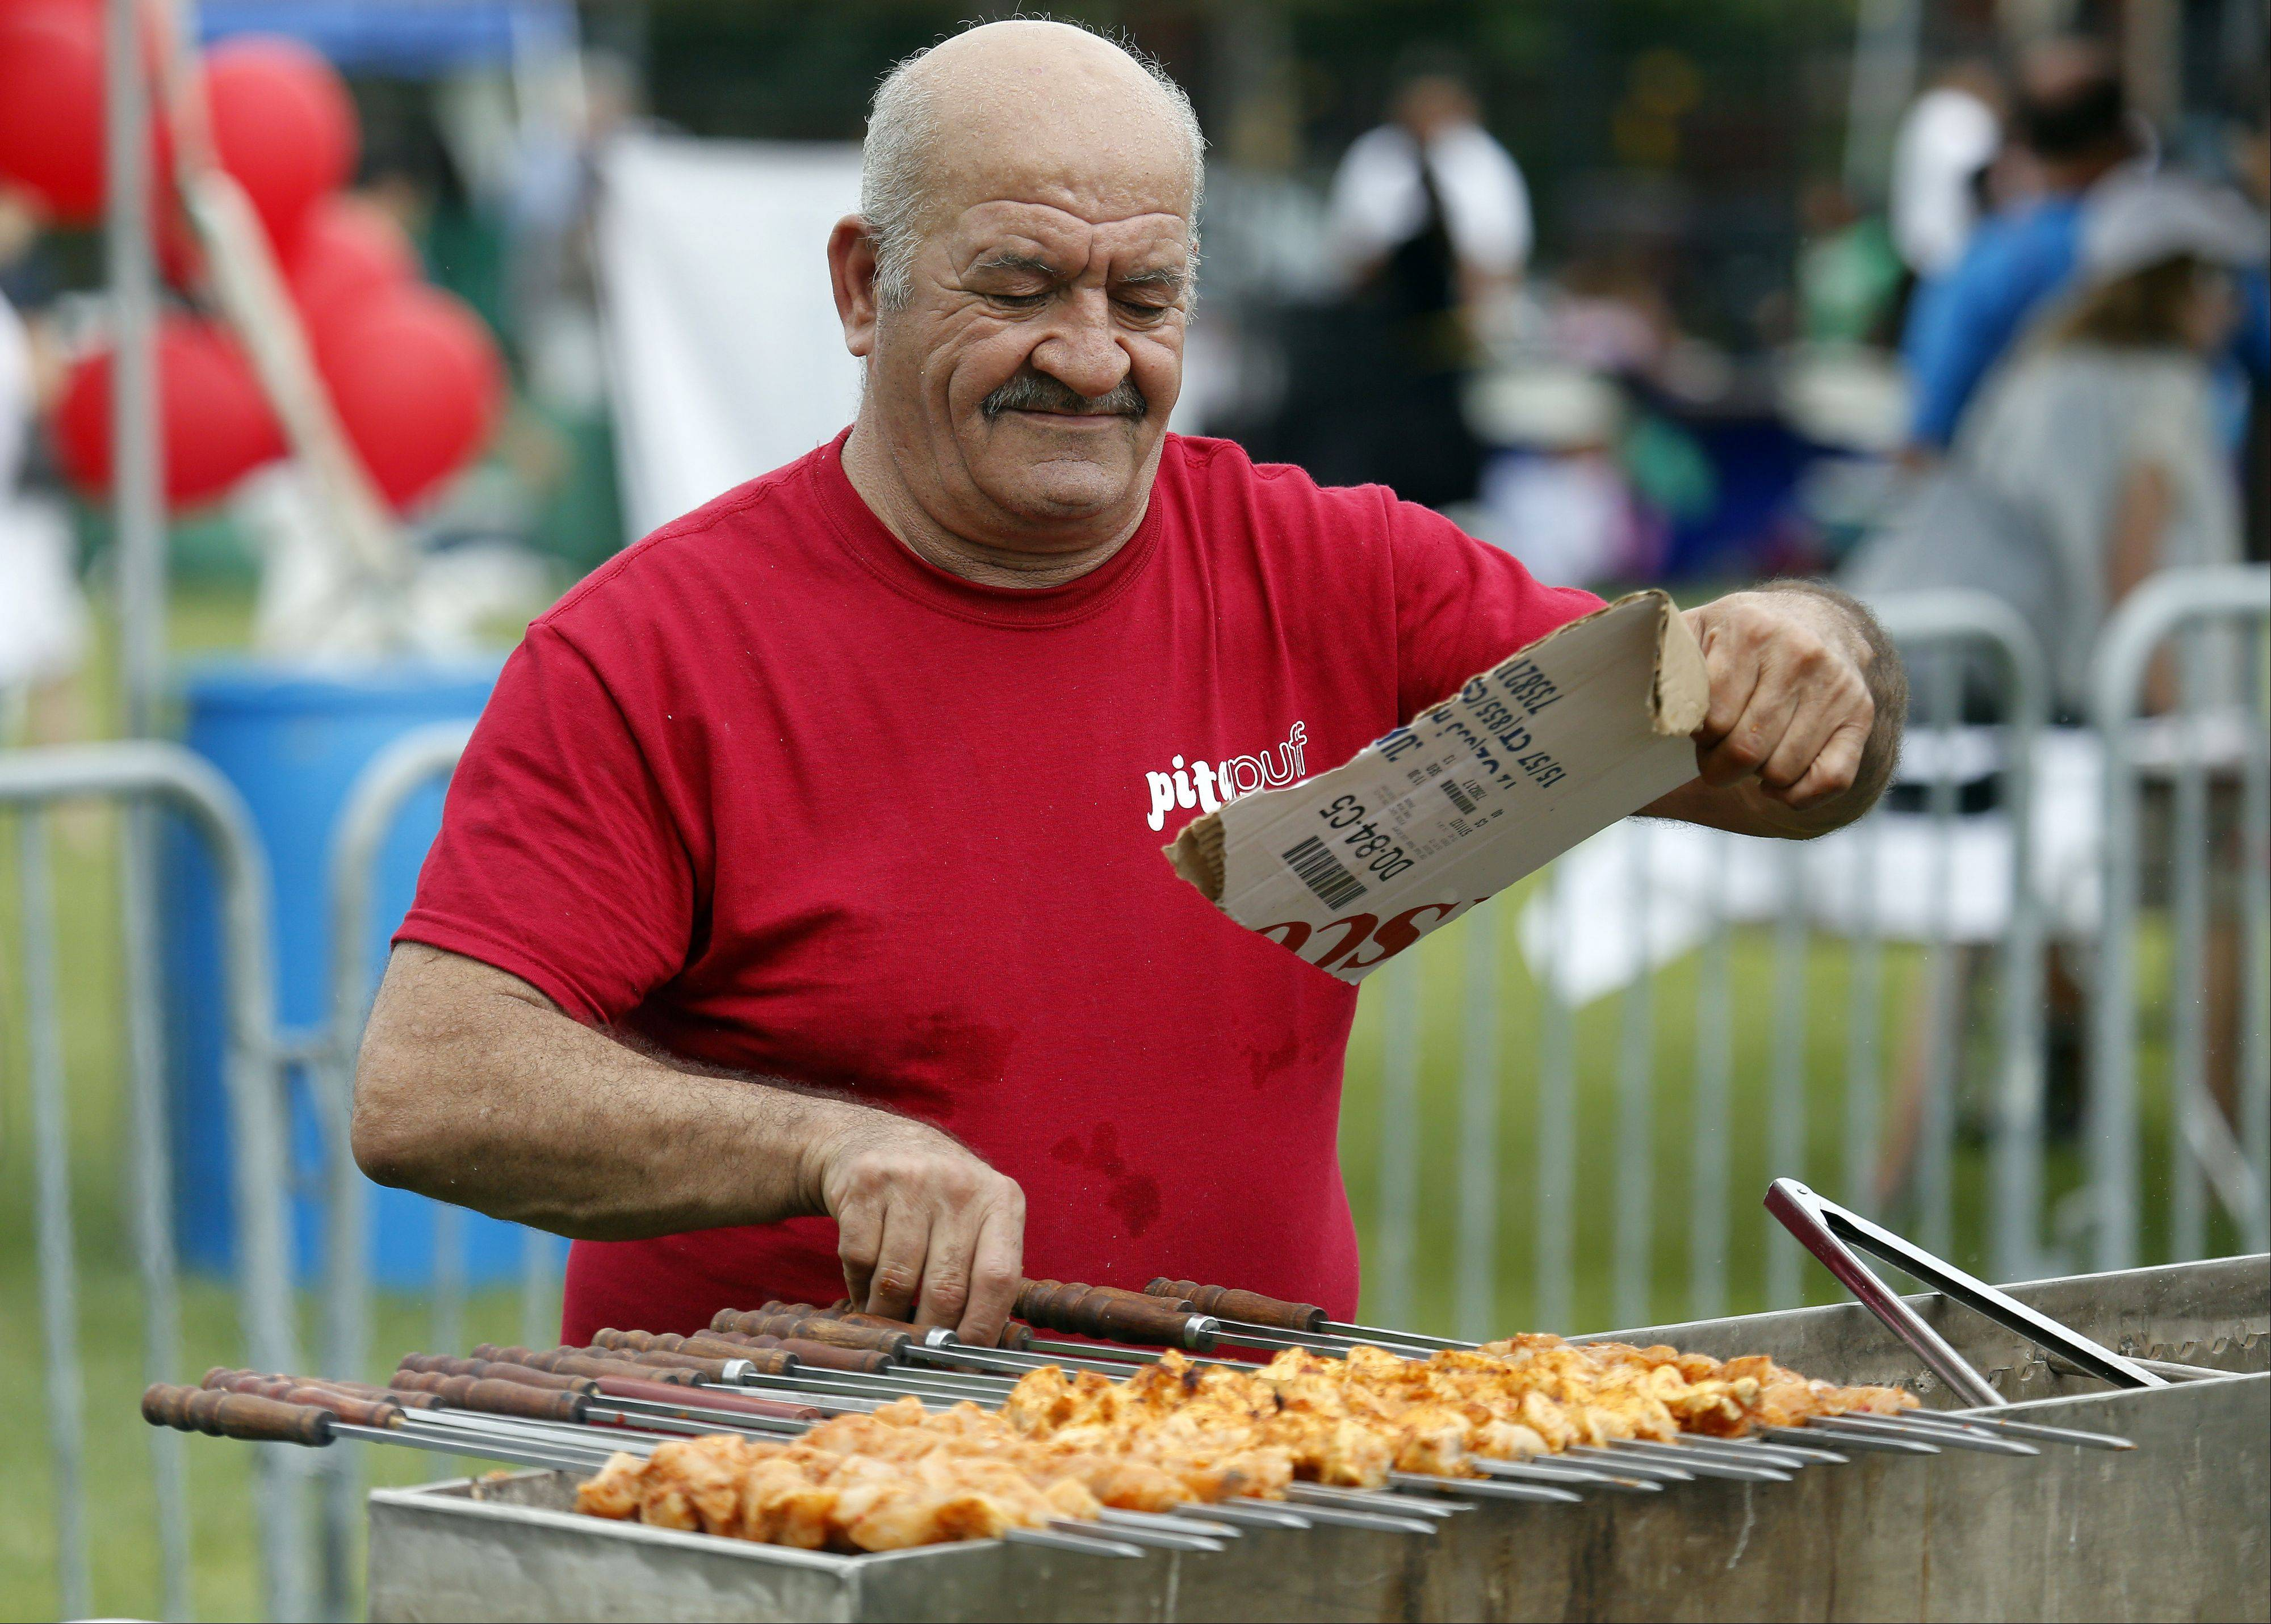 Joseph Shimon of Pita Puff Mediterranean Grill and Cafe works the grill as he cooks up some chicken kebabs Saturday during the Elgin International Festival at Festival Park.